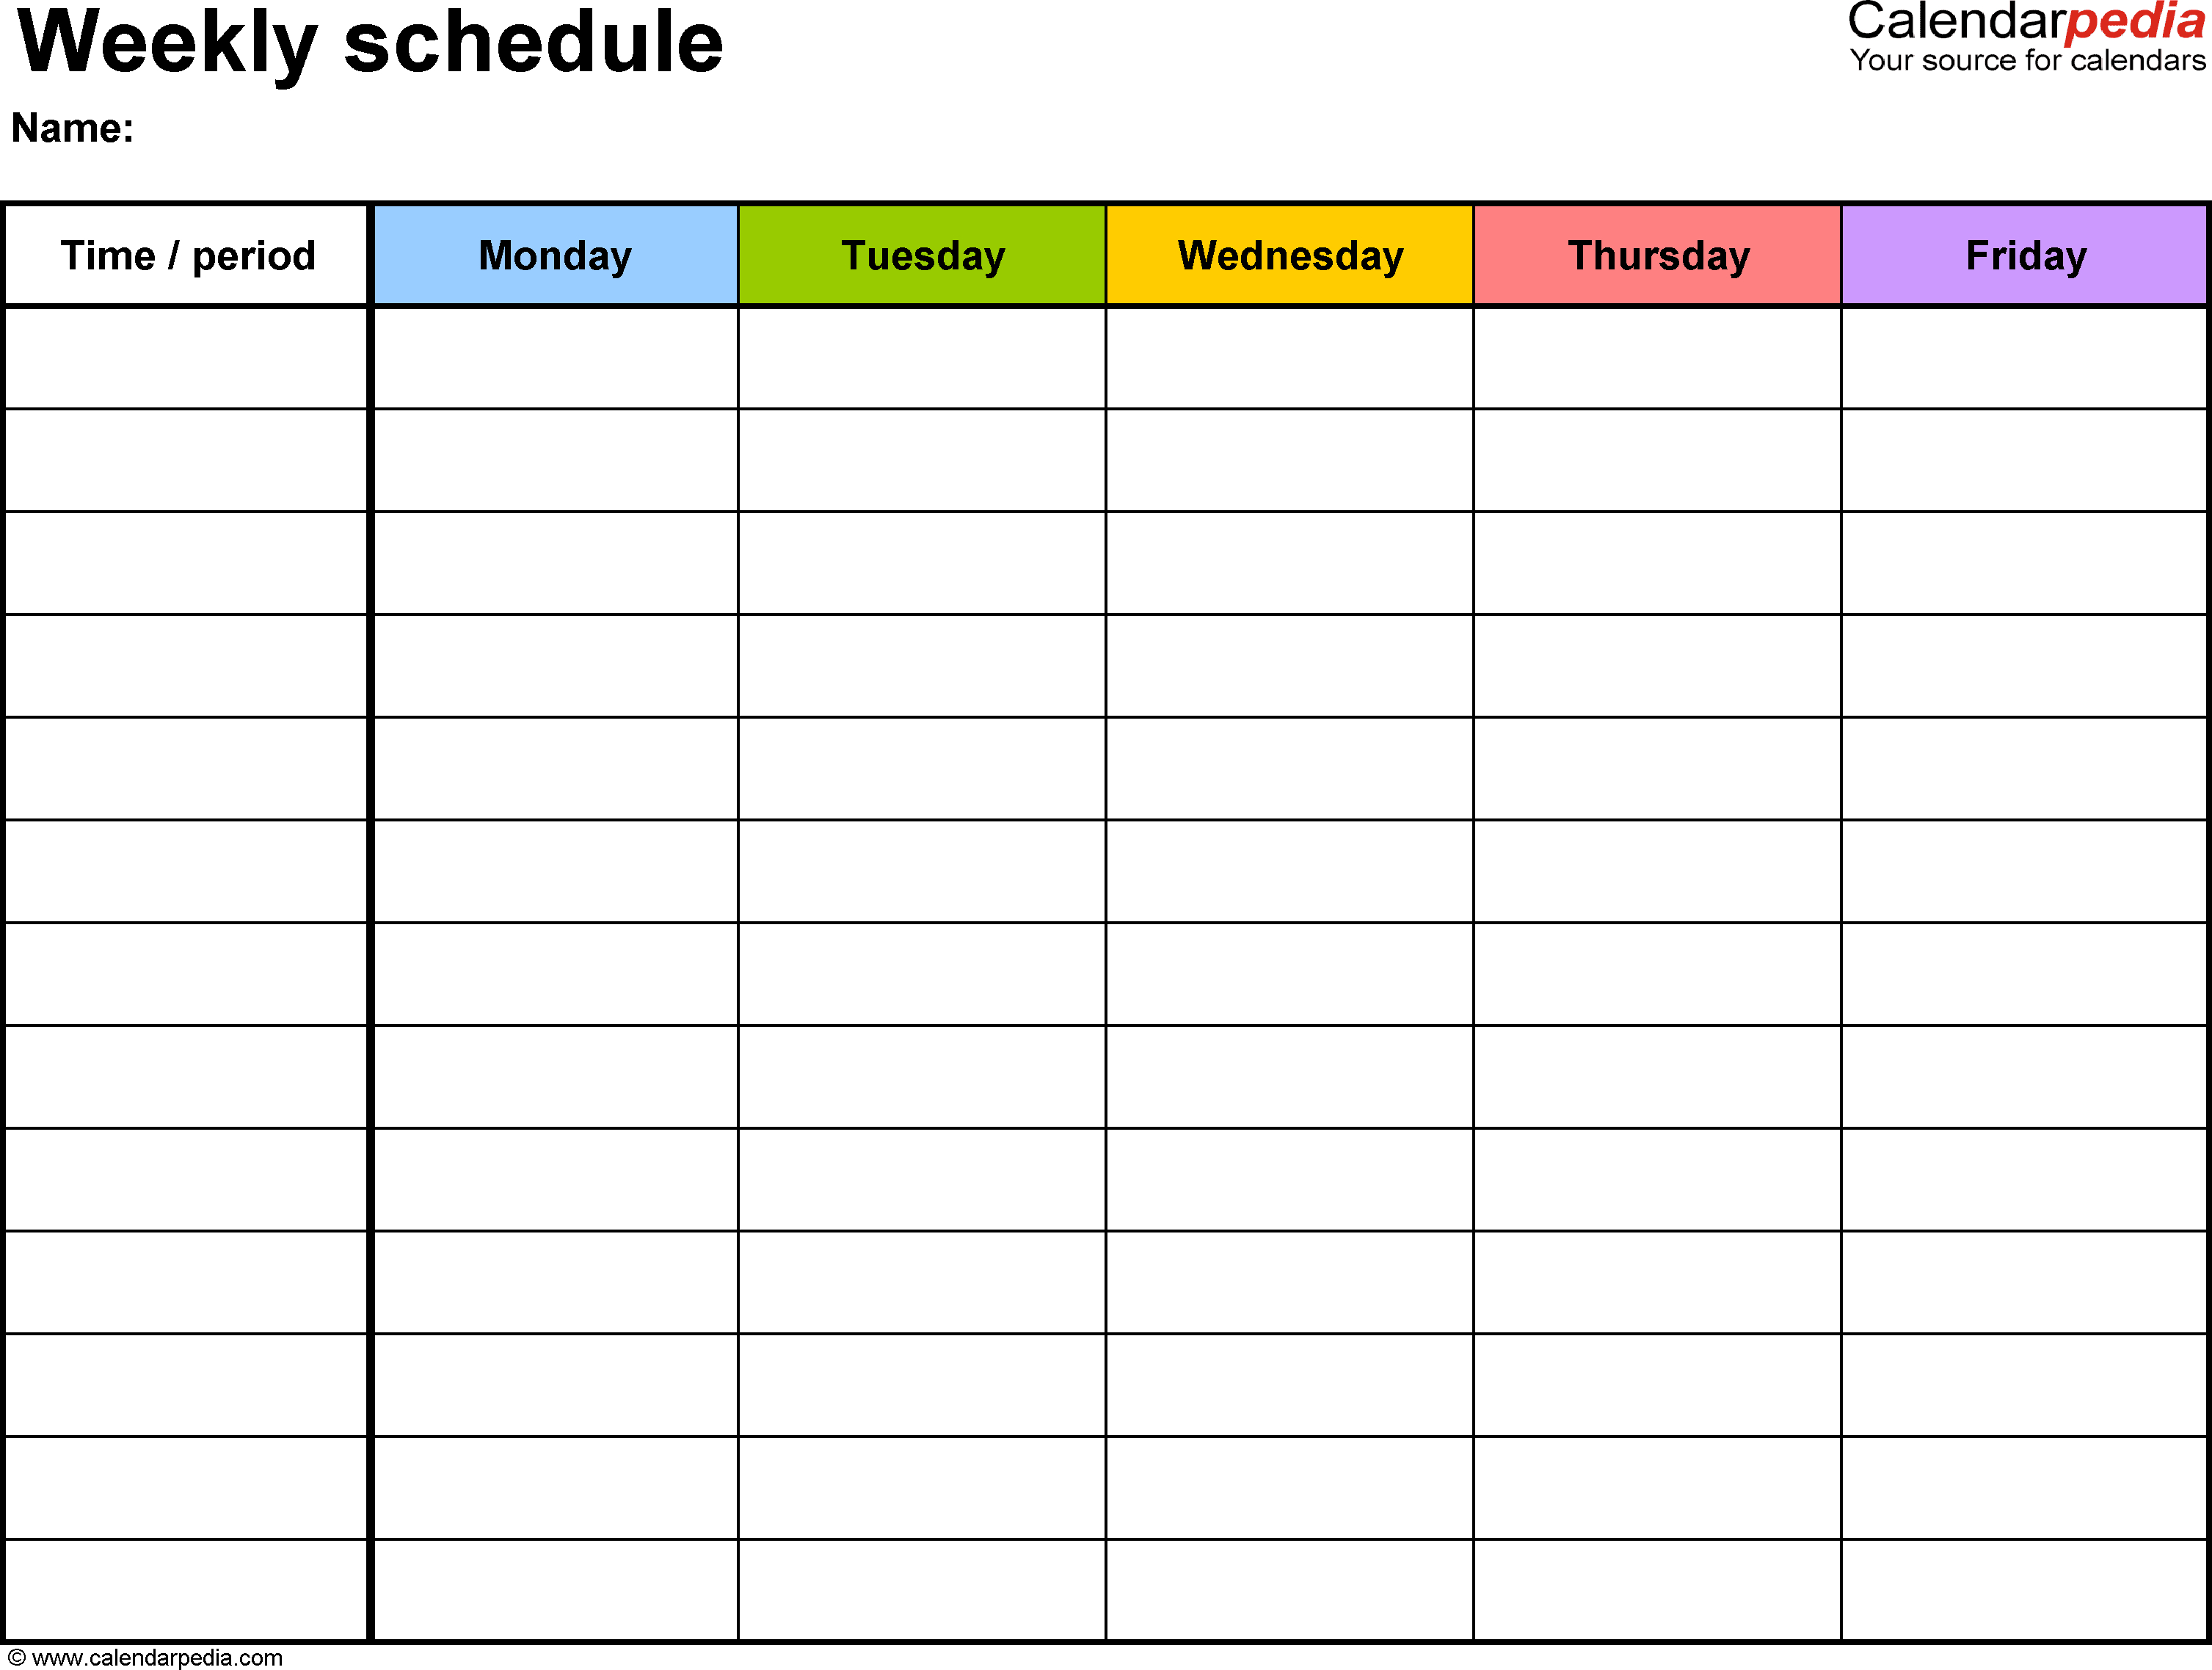 Free Weekly Schedule Templates For Excel - 18 Templates for 1 Week Blank Calendar Template